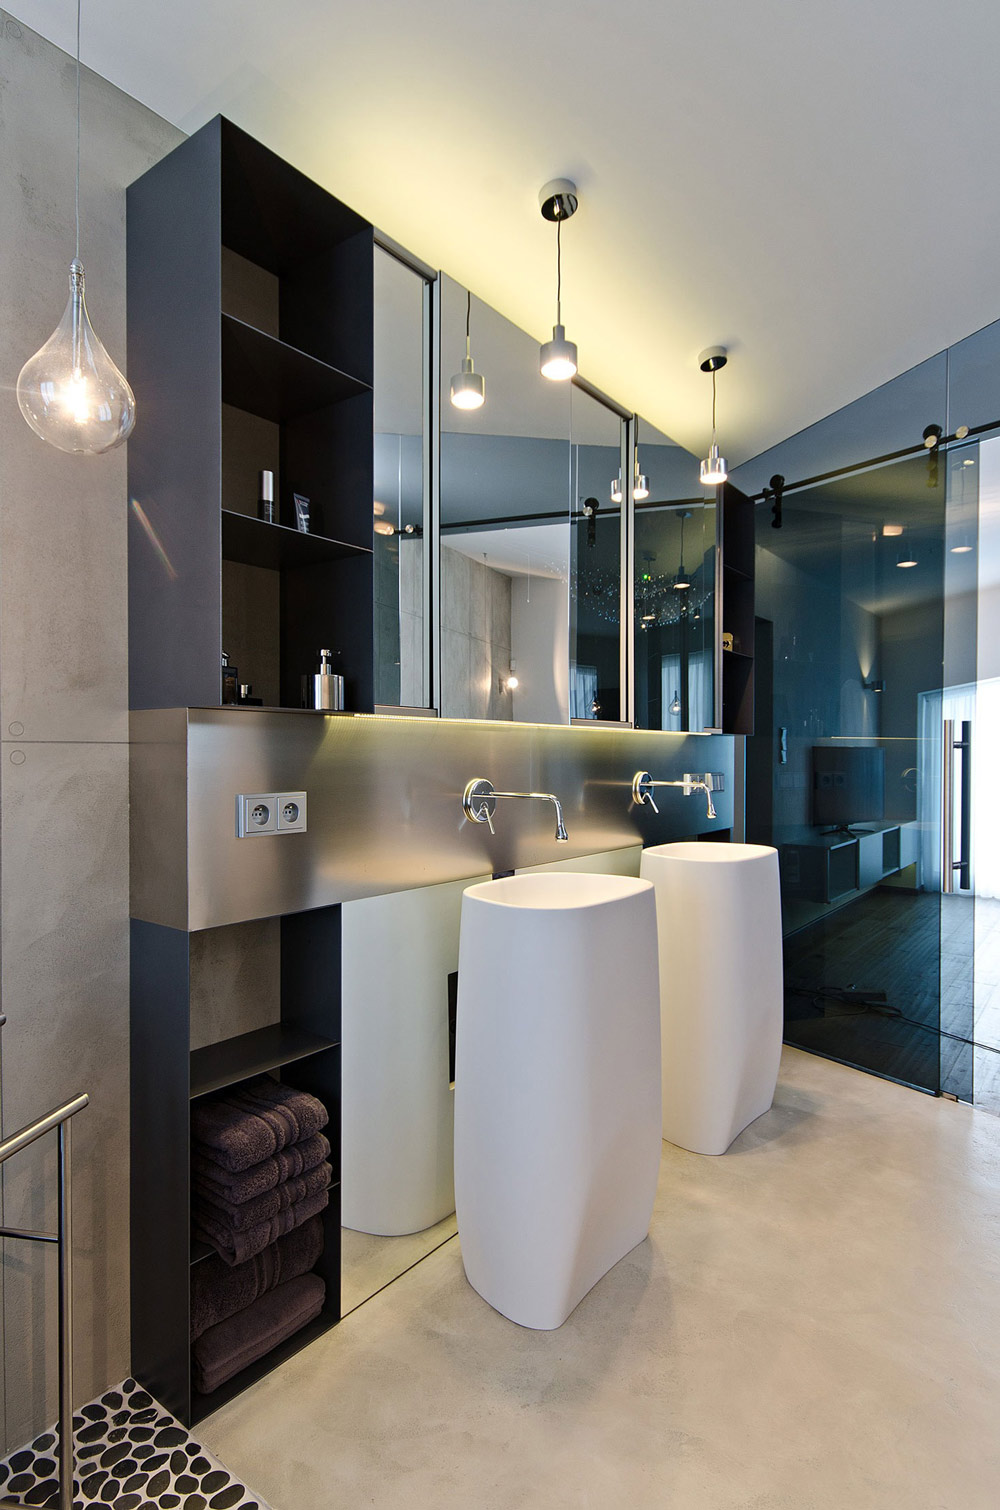 Bathroom Sinks, Concrete Interior Design in Osice, Czech Republic